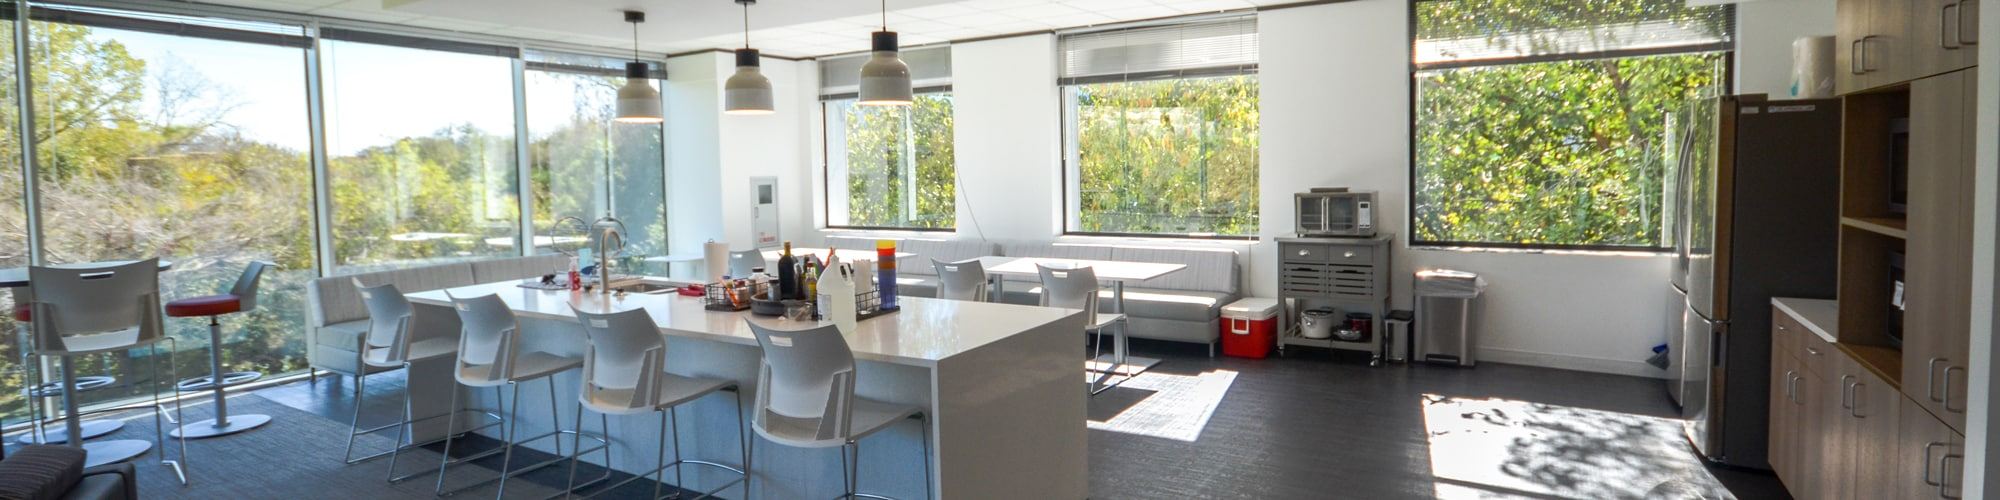 Plaza-on-the-Lake-Suite-380-Sublease-Kitchen